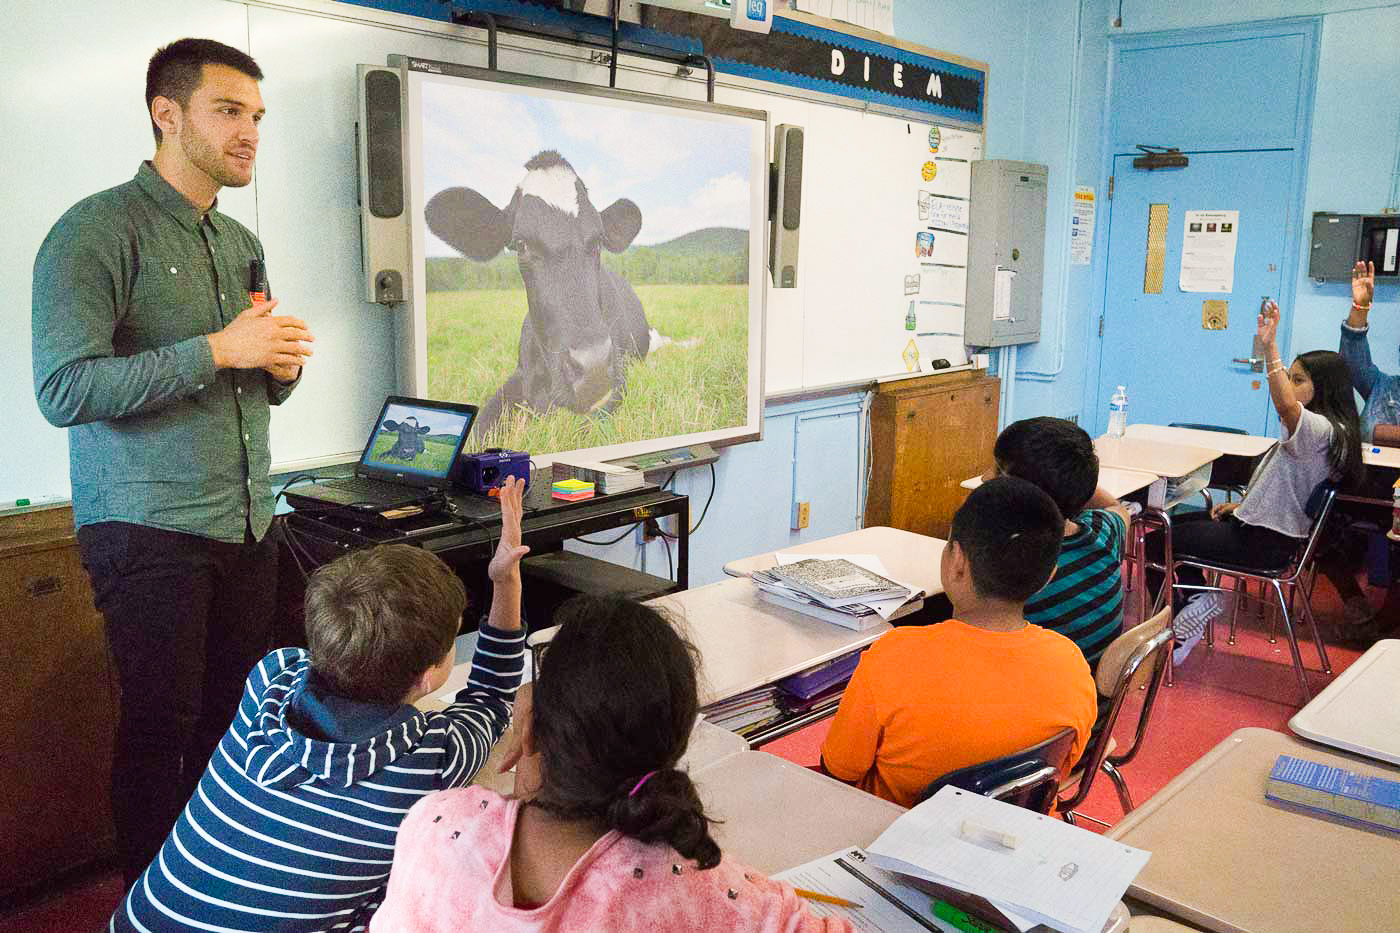 Vertical explainer photo 1 - Humane educator gives a presentation in the classroom